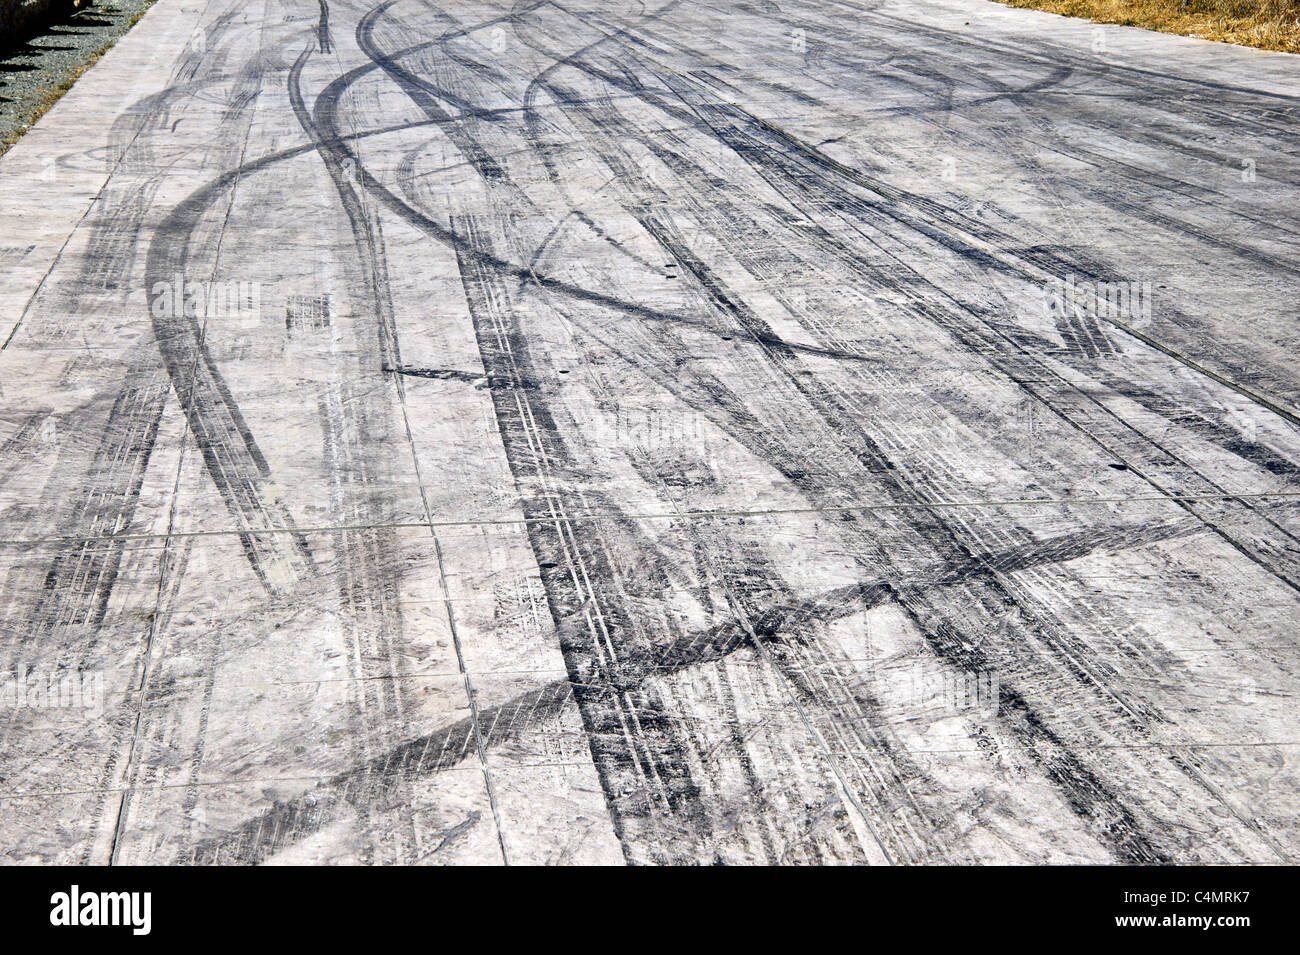 car tyre skid marks on road track - Stock Image